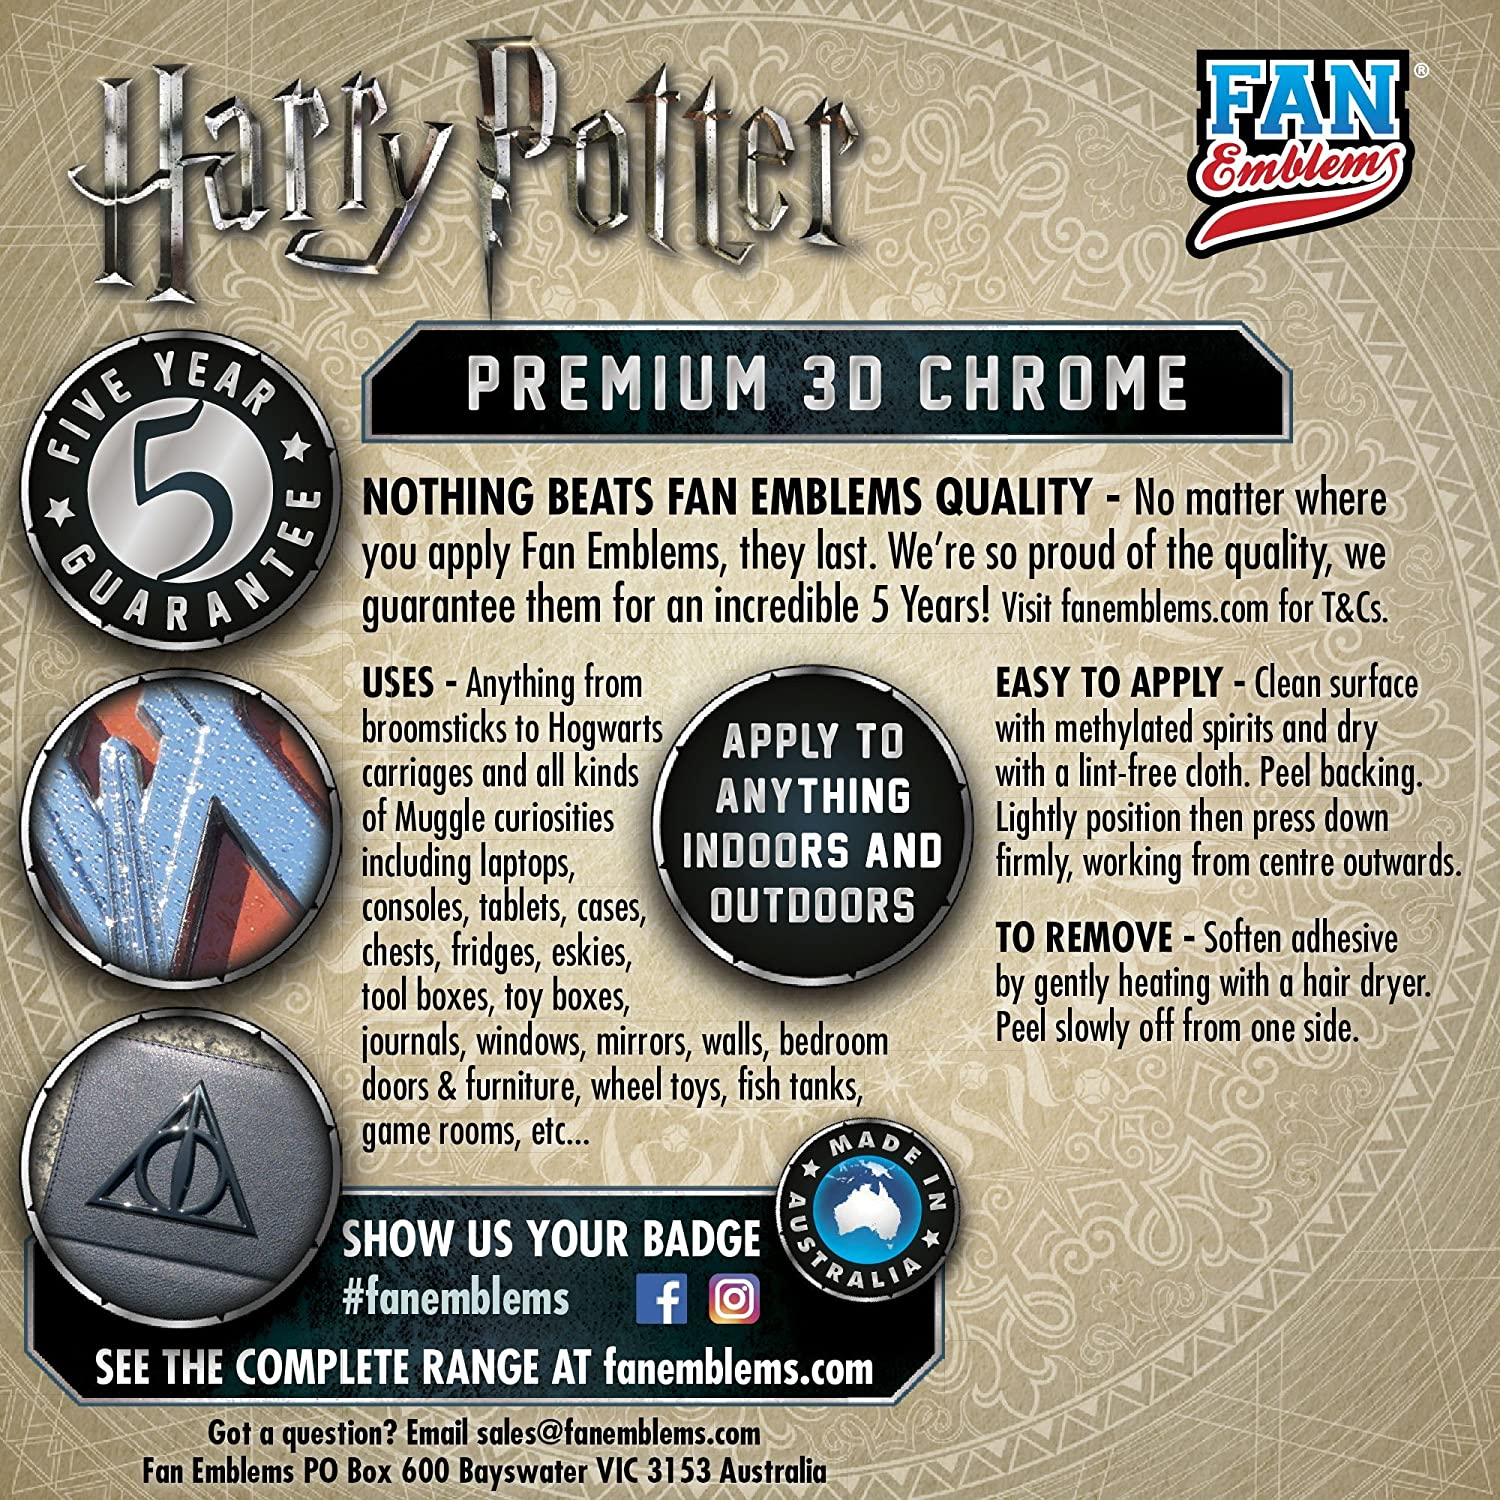 Windows Trucks Fan Emblems Deathly Hallows 3D Car Emblem Chrome Motorcycles Almost Anything LNI Australia 9672-111 Harry Potter Automotive Sticker Decal Badge Flexes to Fully Adhere to Cars Laptops